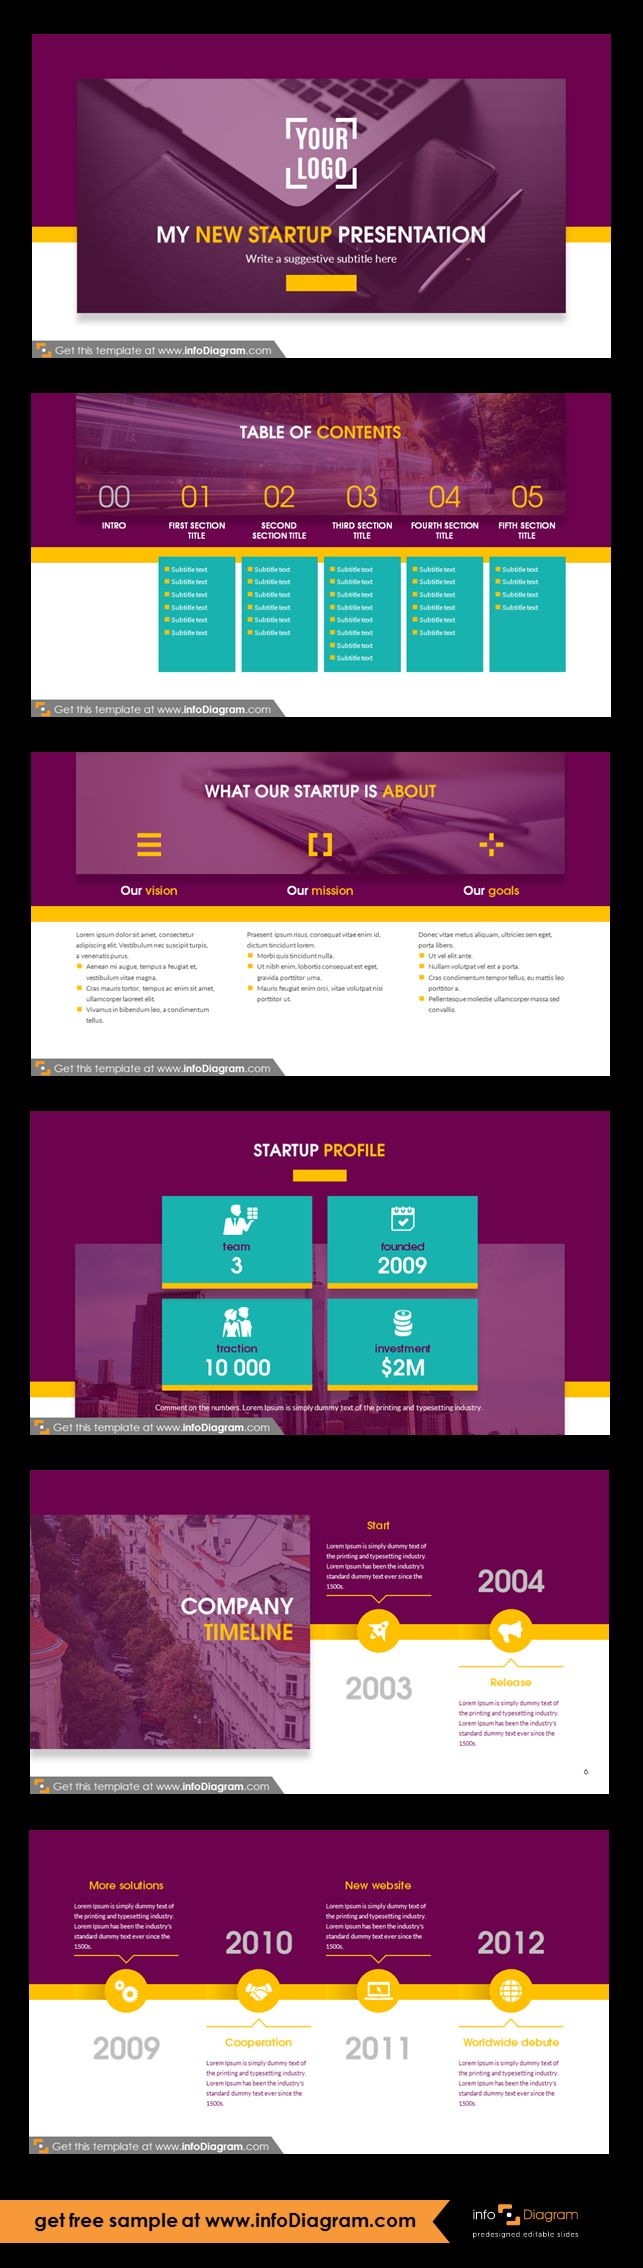 New startup company presentation template and slide deck with several layouts. Predesigned infographics shapes and slide content. Ideal for new business idea presentation or pitch deck for investors. Presentation intro - logo and title. Presentation table of contents with section slides title and notes. Startup statements: vision, goals, mission. Start-up, company profile: team, founded, traction, investment. Startup timeline slides: start and release, solutions and debute, awards and new…